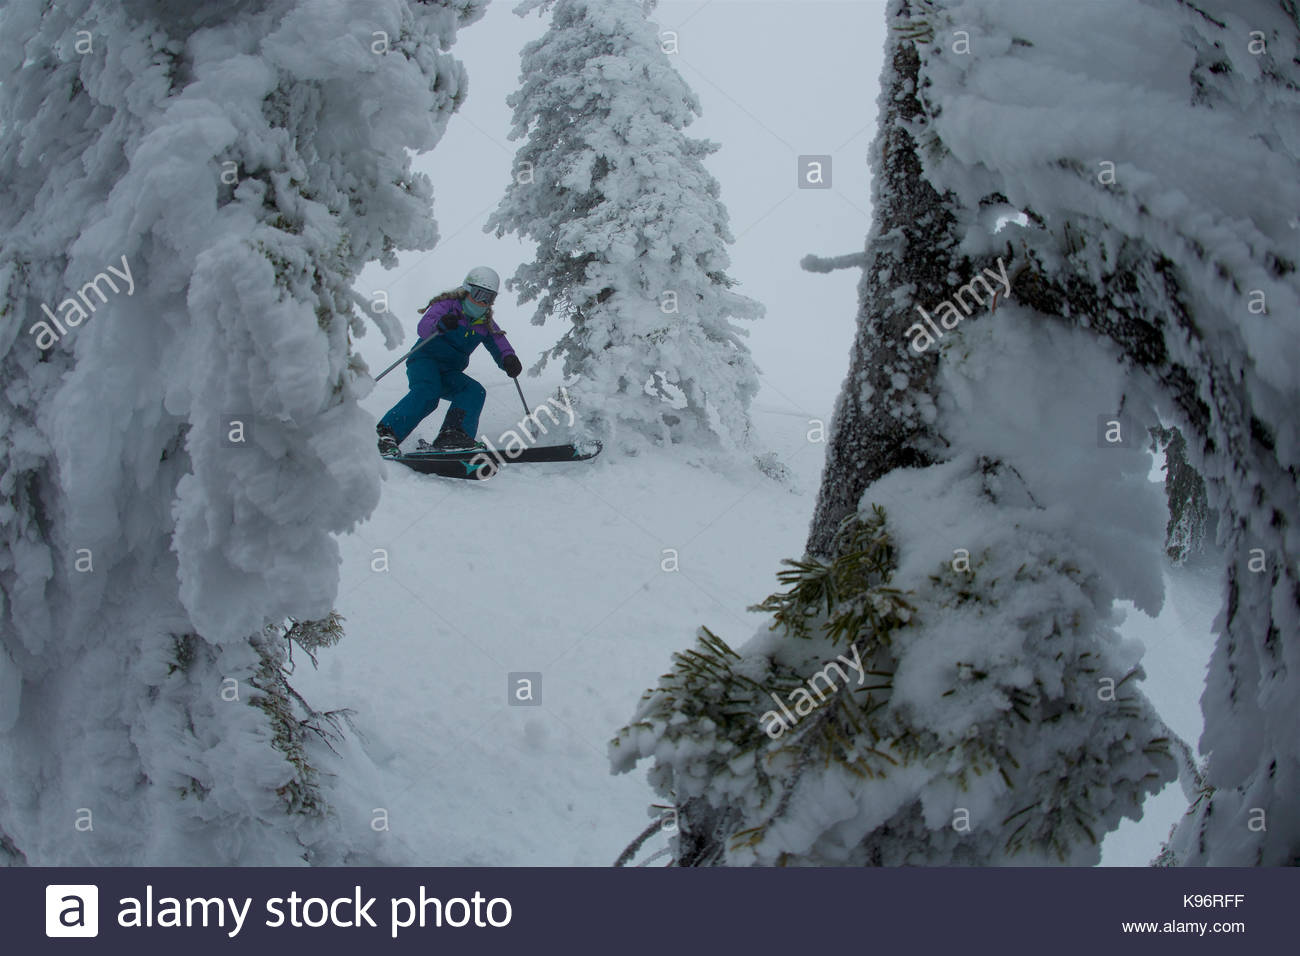 A teen girl skiing through rime covered conifer trees in foggy, whiteout conditions. - Stock Image